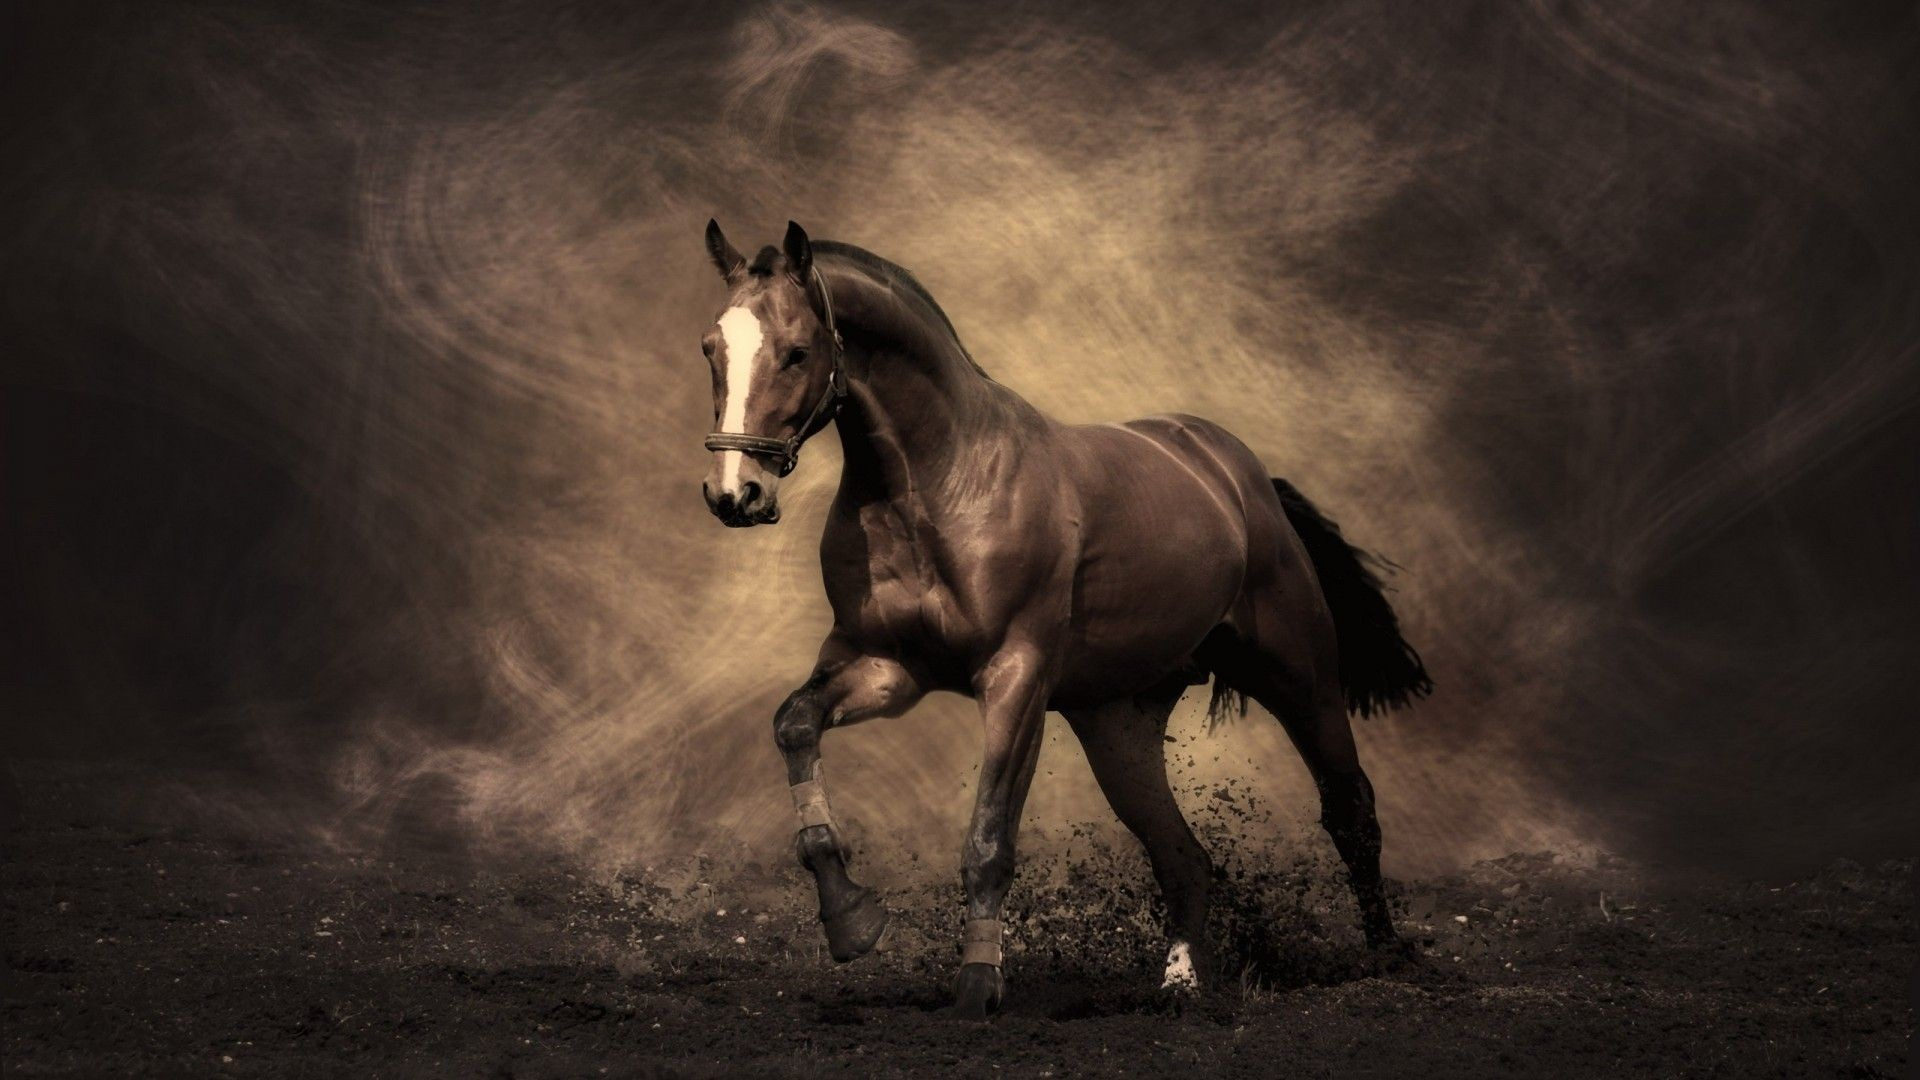 1920x1080 gif horse images | Horse Desktop in high resolution for free. Get Arabian  Racing Horse